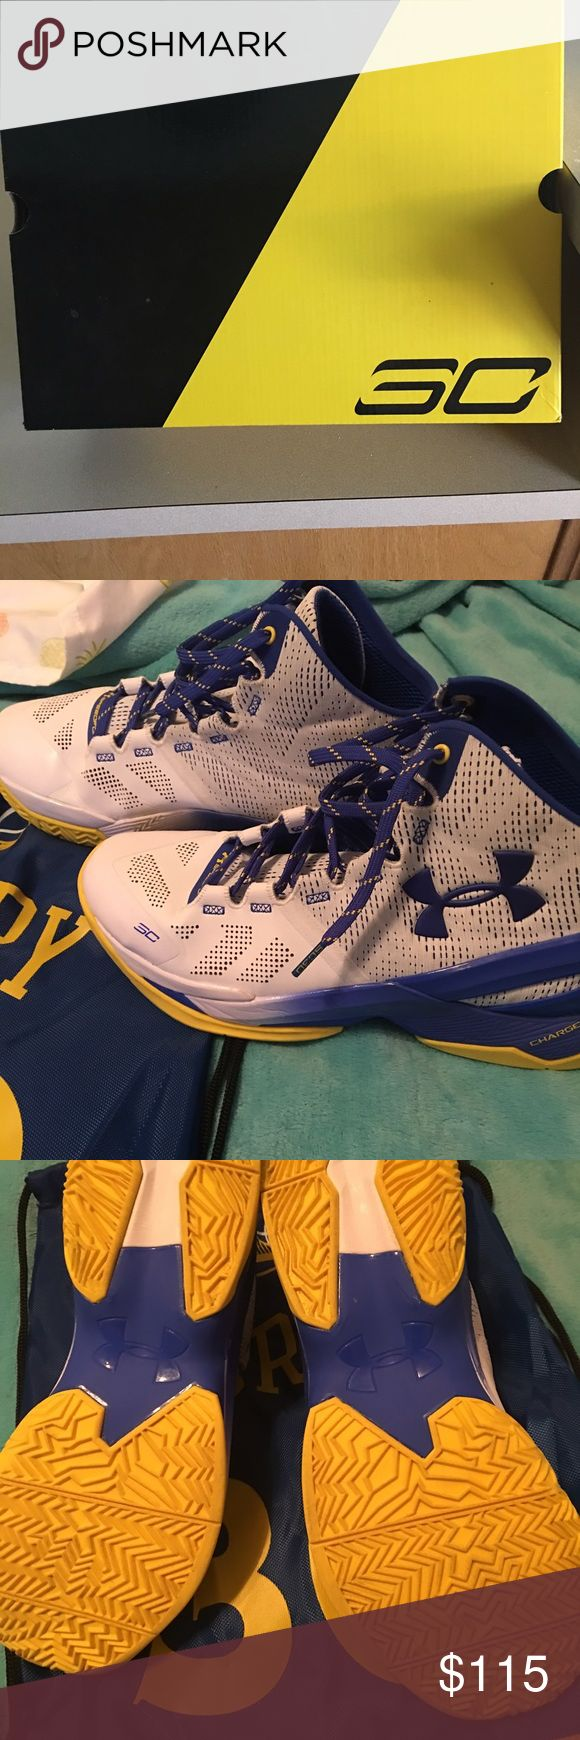 Under Armor Steph Curry MVP 2's Basketball Shoes Gently worn Steph Curry 2's basketball shoes. Only worn on COURT 1 time, like new. Well maintained, always stored in original box or Steph Curry bag. Under Armour Shoes Athletic Shoes